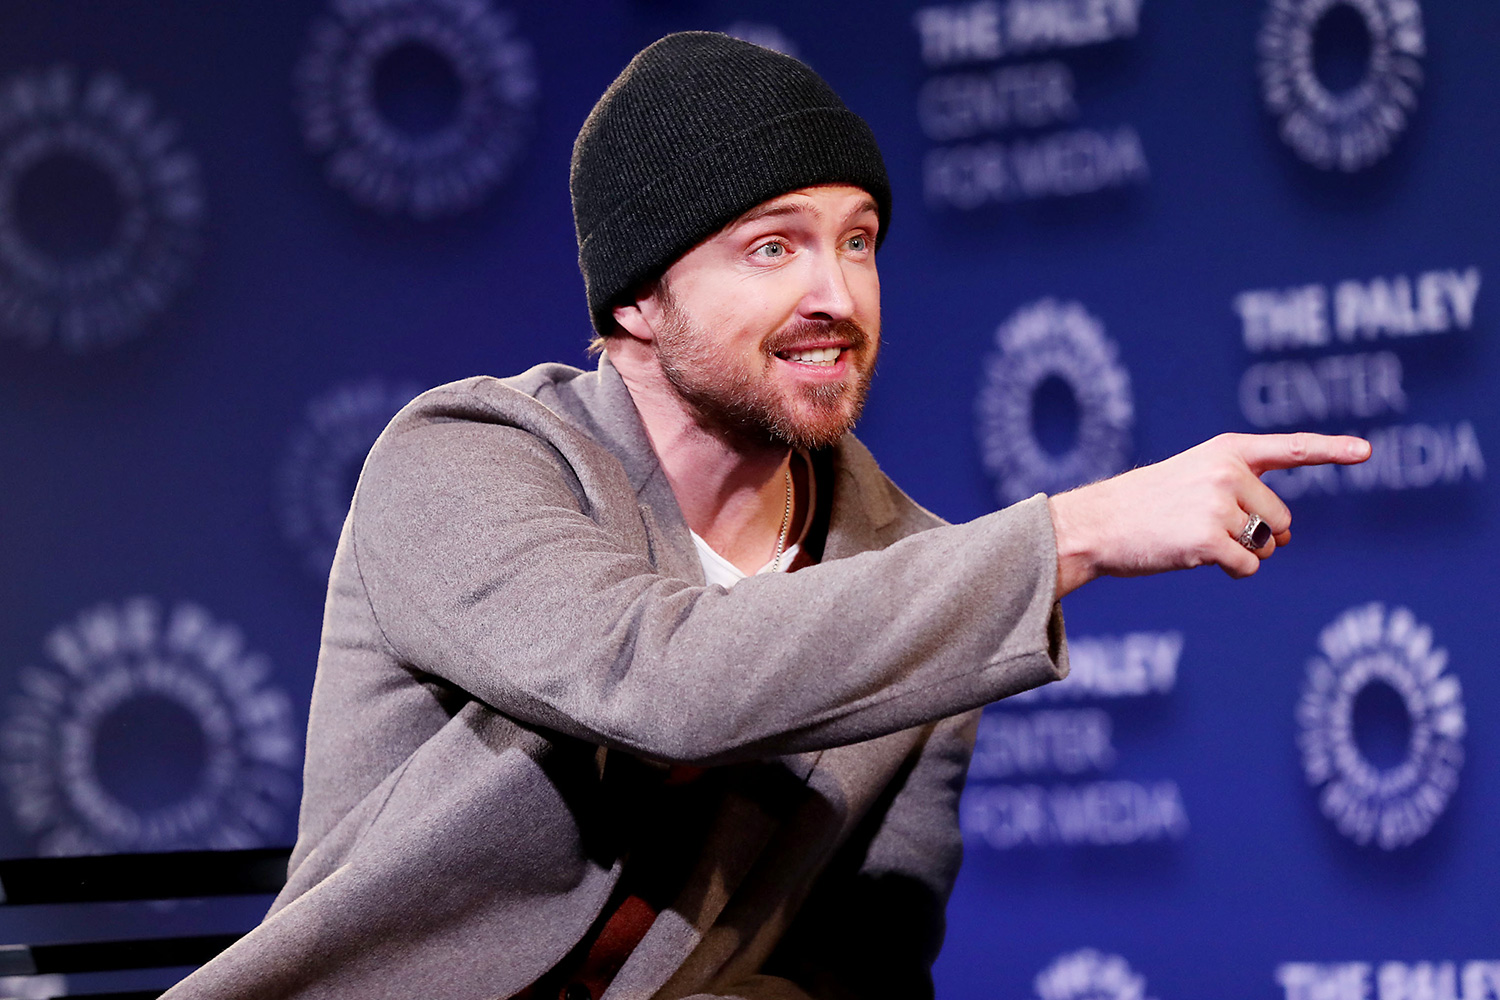 """Aaron Paul PaleyLive NY: Apple's """"Truth be Told: Exclusive Screening, New York, USA - 12 Dec 2019"""